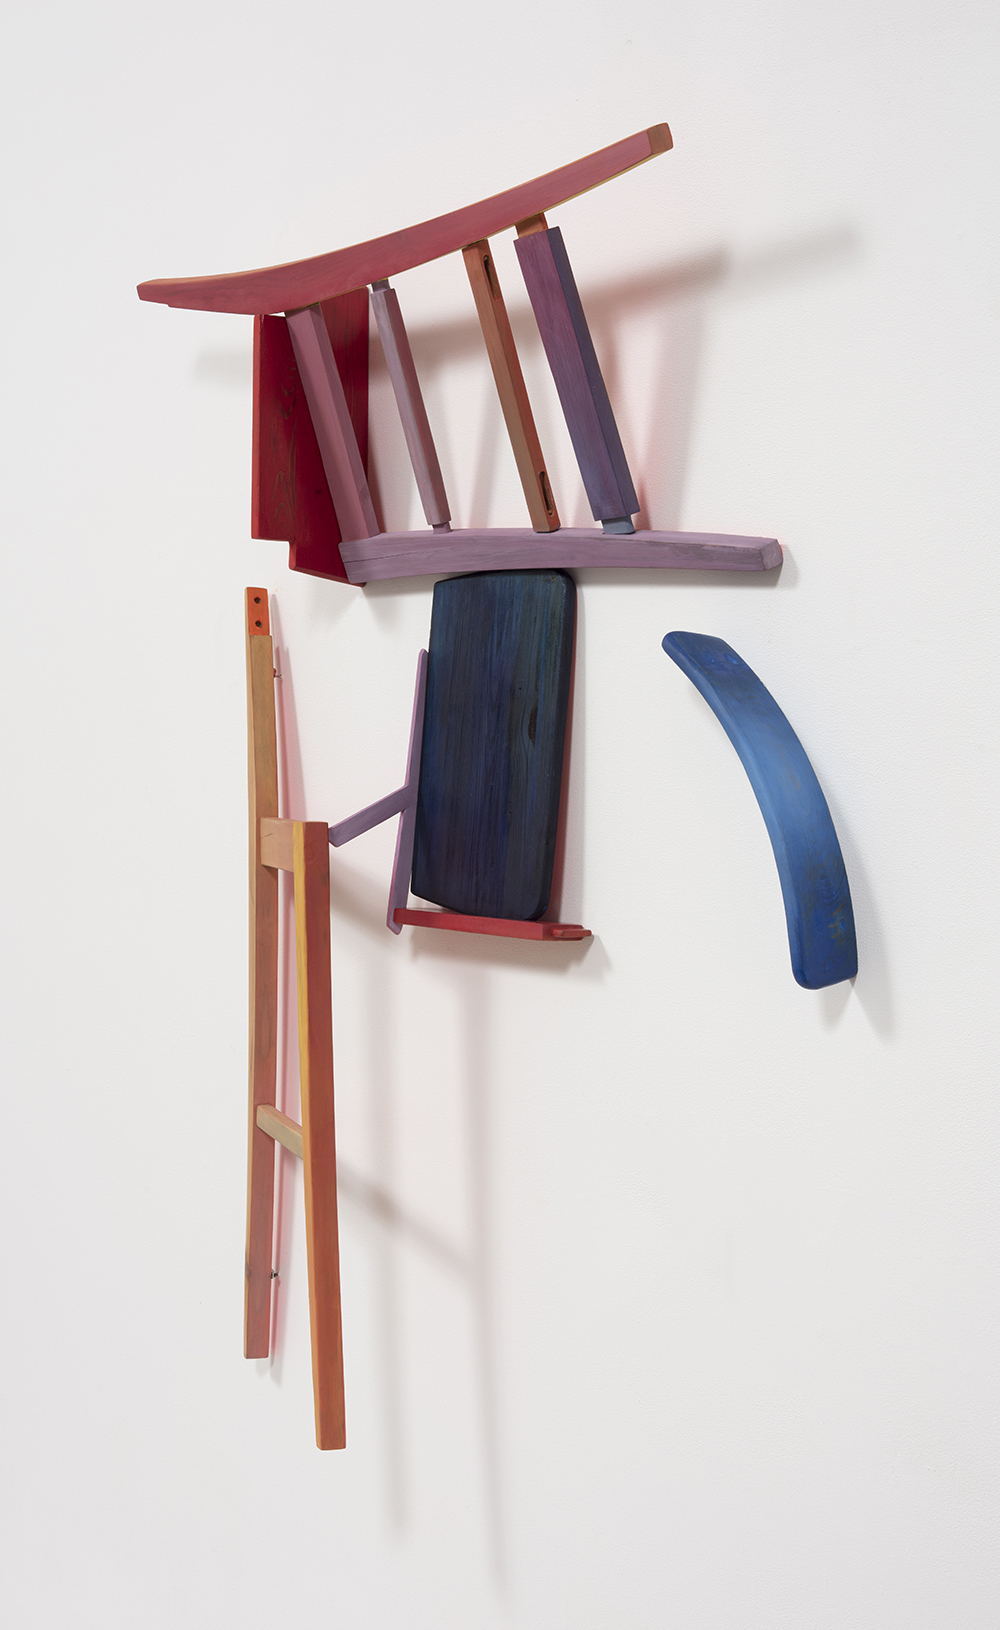 Gabrielle D'Angelo.<em> Chair Piece</em>, 2019. Wood, milk and flash paint, dye, varnish, 56 x 42 x 8 inches (142.2 x 106.7 x 20.3 cm)